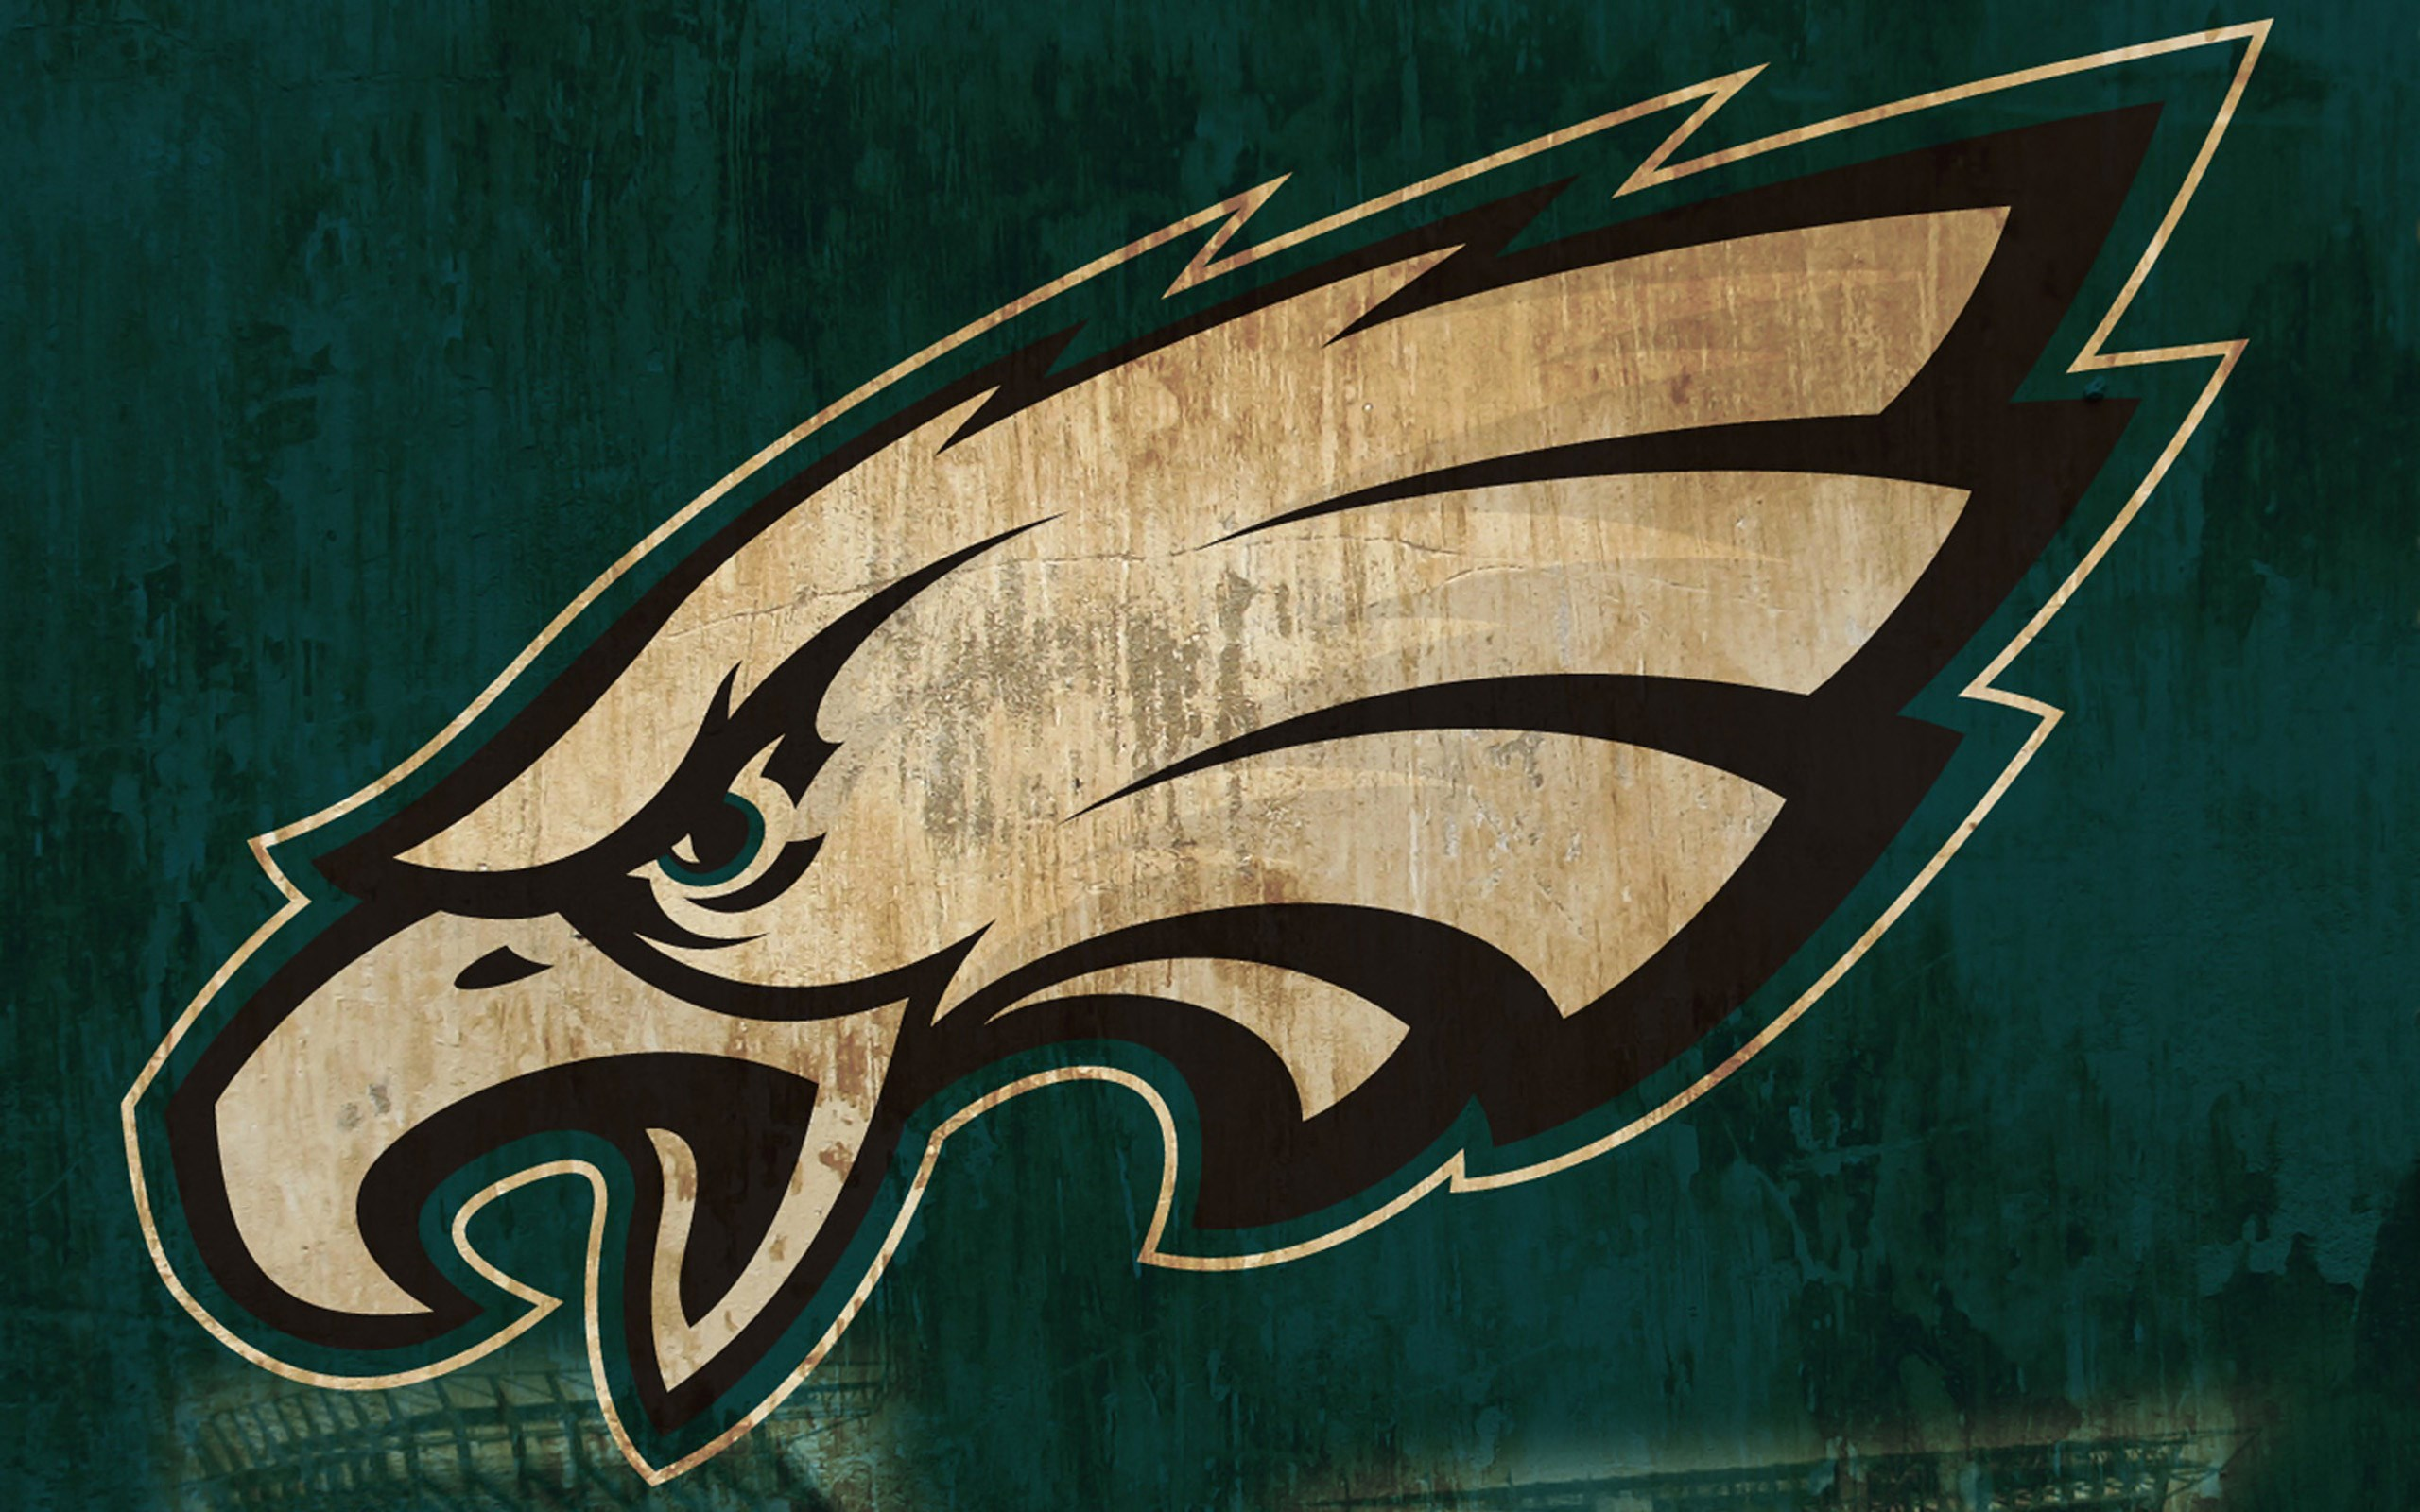 Beowulf-Bush-philadelphia-eagles-pack-1080p-hd-x-px-wallpaper-wp3403065